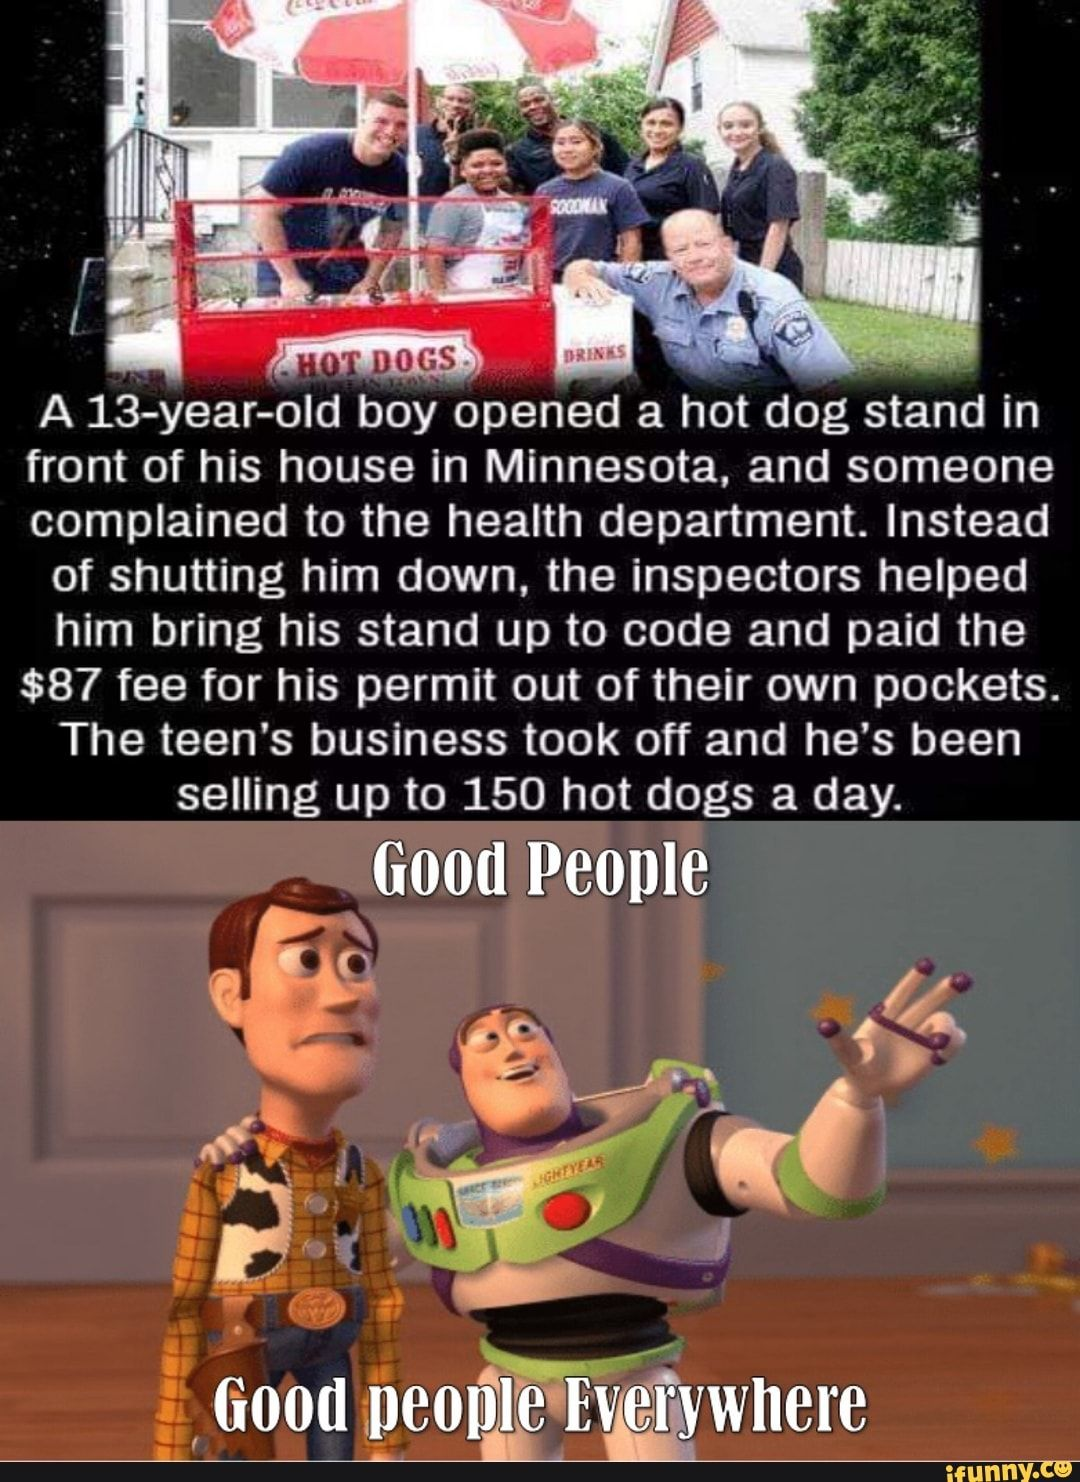 A 13 Year Old Boy Opened A Hot Dog Stand In Front Of His House In Minnesota And Someone Complained To The Health Department Instead Of Shutting Him Down The 13 Year